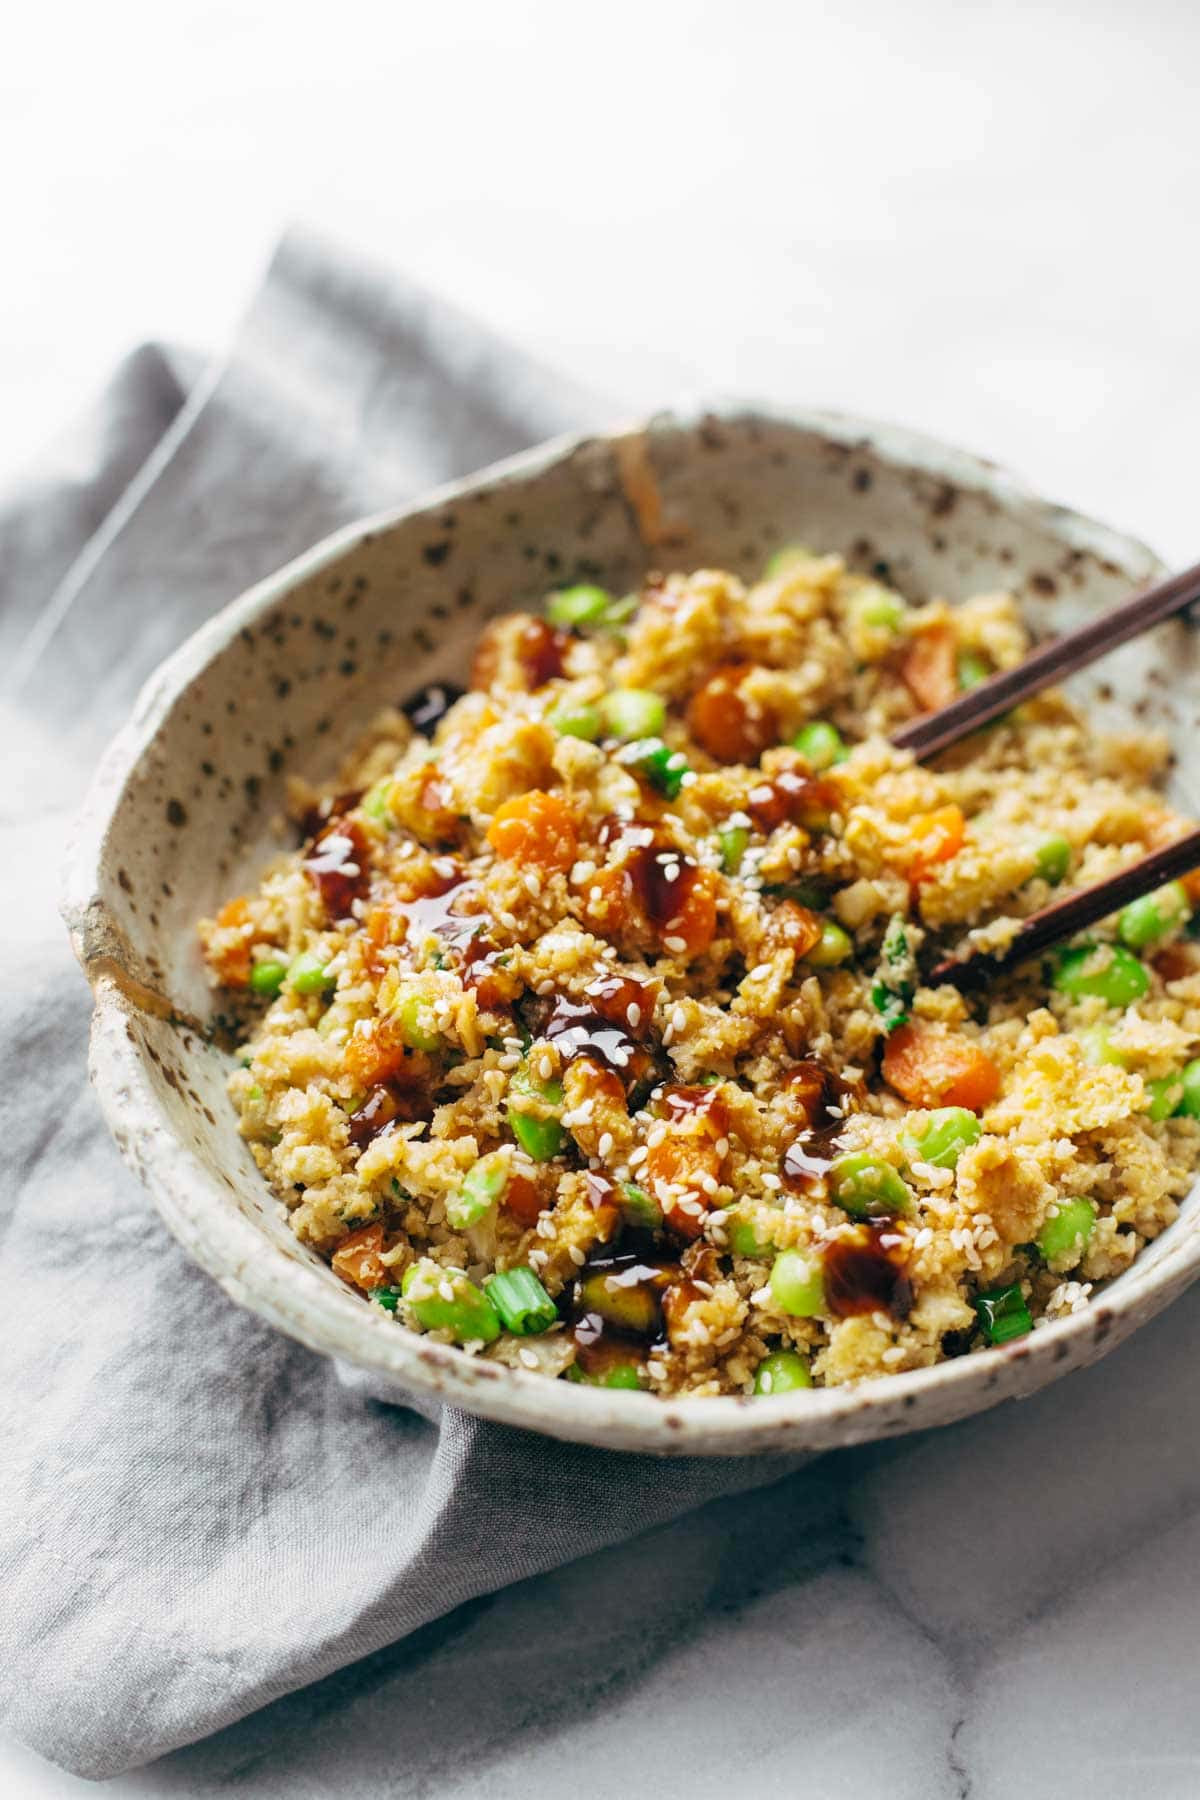 Rice Cauliflower Recipes  15 Minute Cauliflower Fried Rice Recipe Pinch of Yum